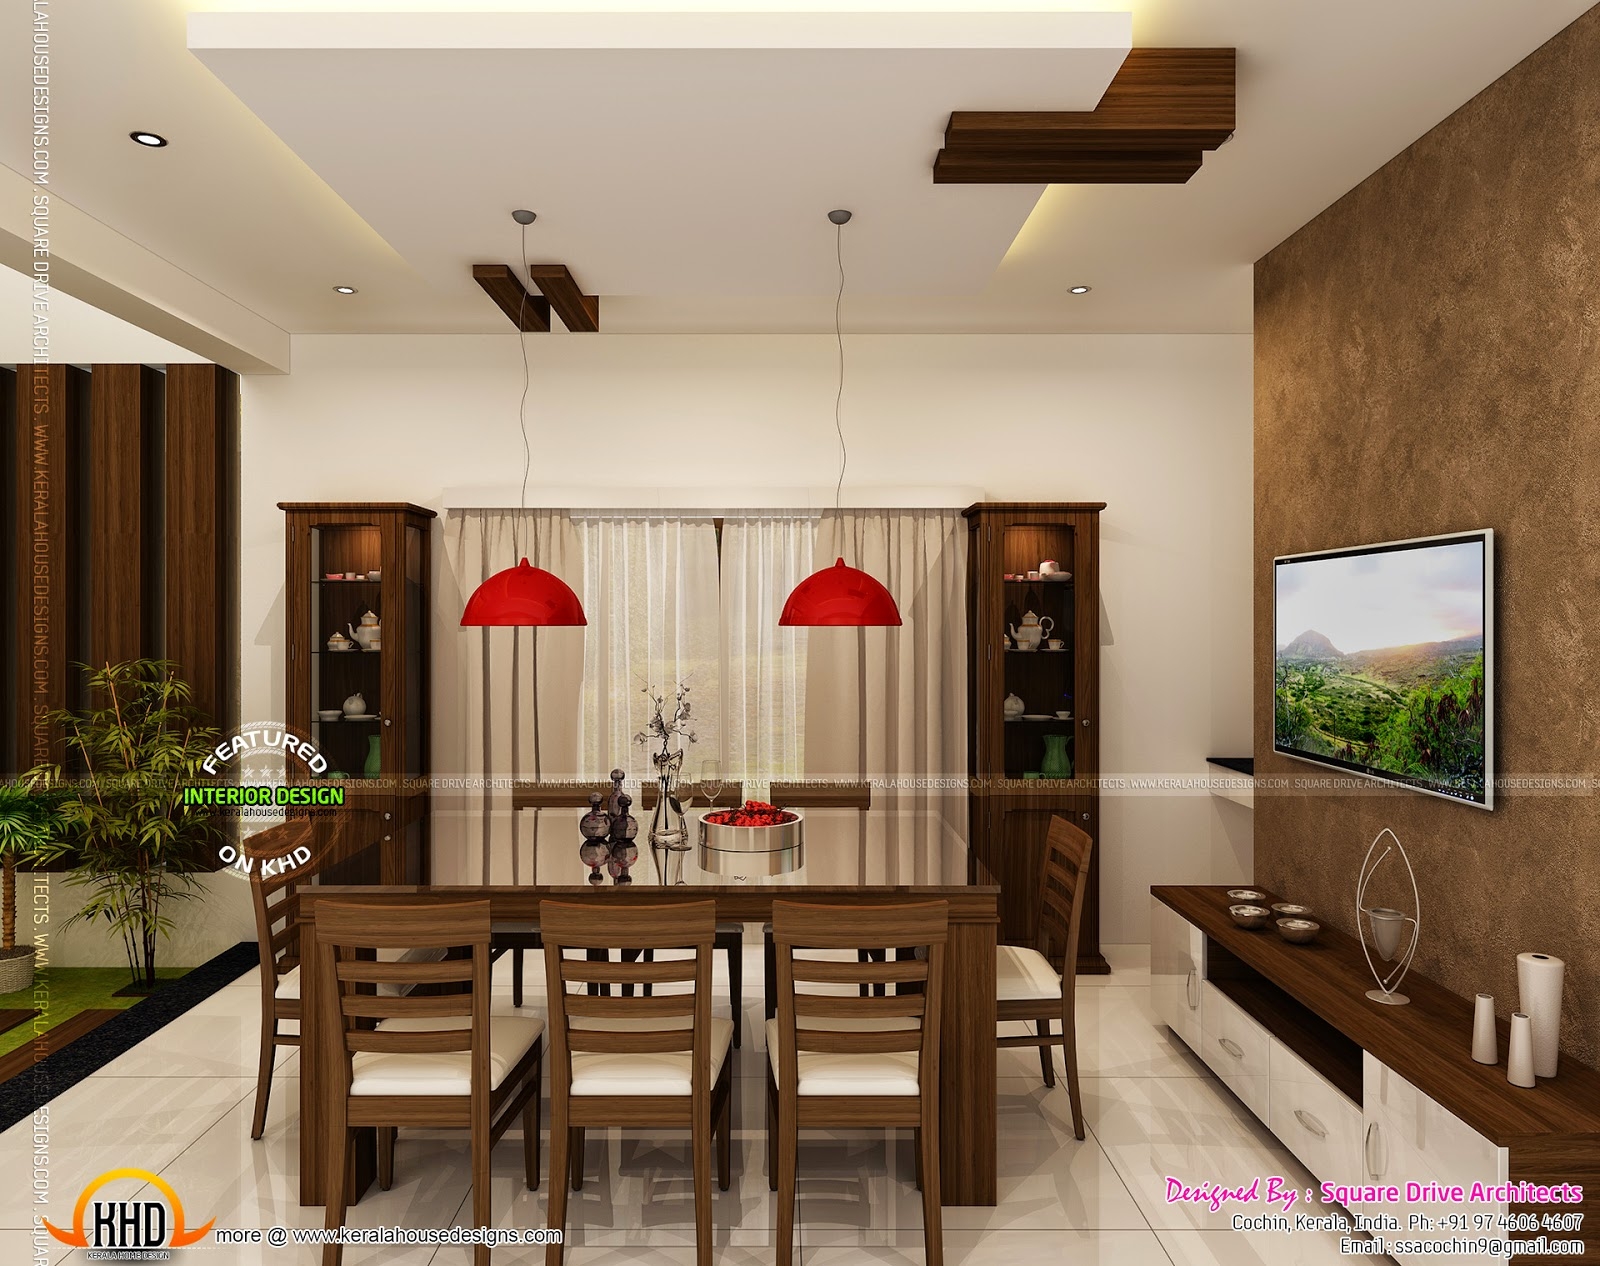 Home interiors designs kerala home design and floor plans for Dining room designs kerala